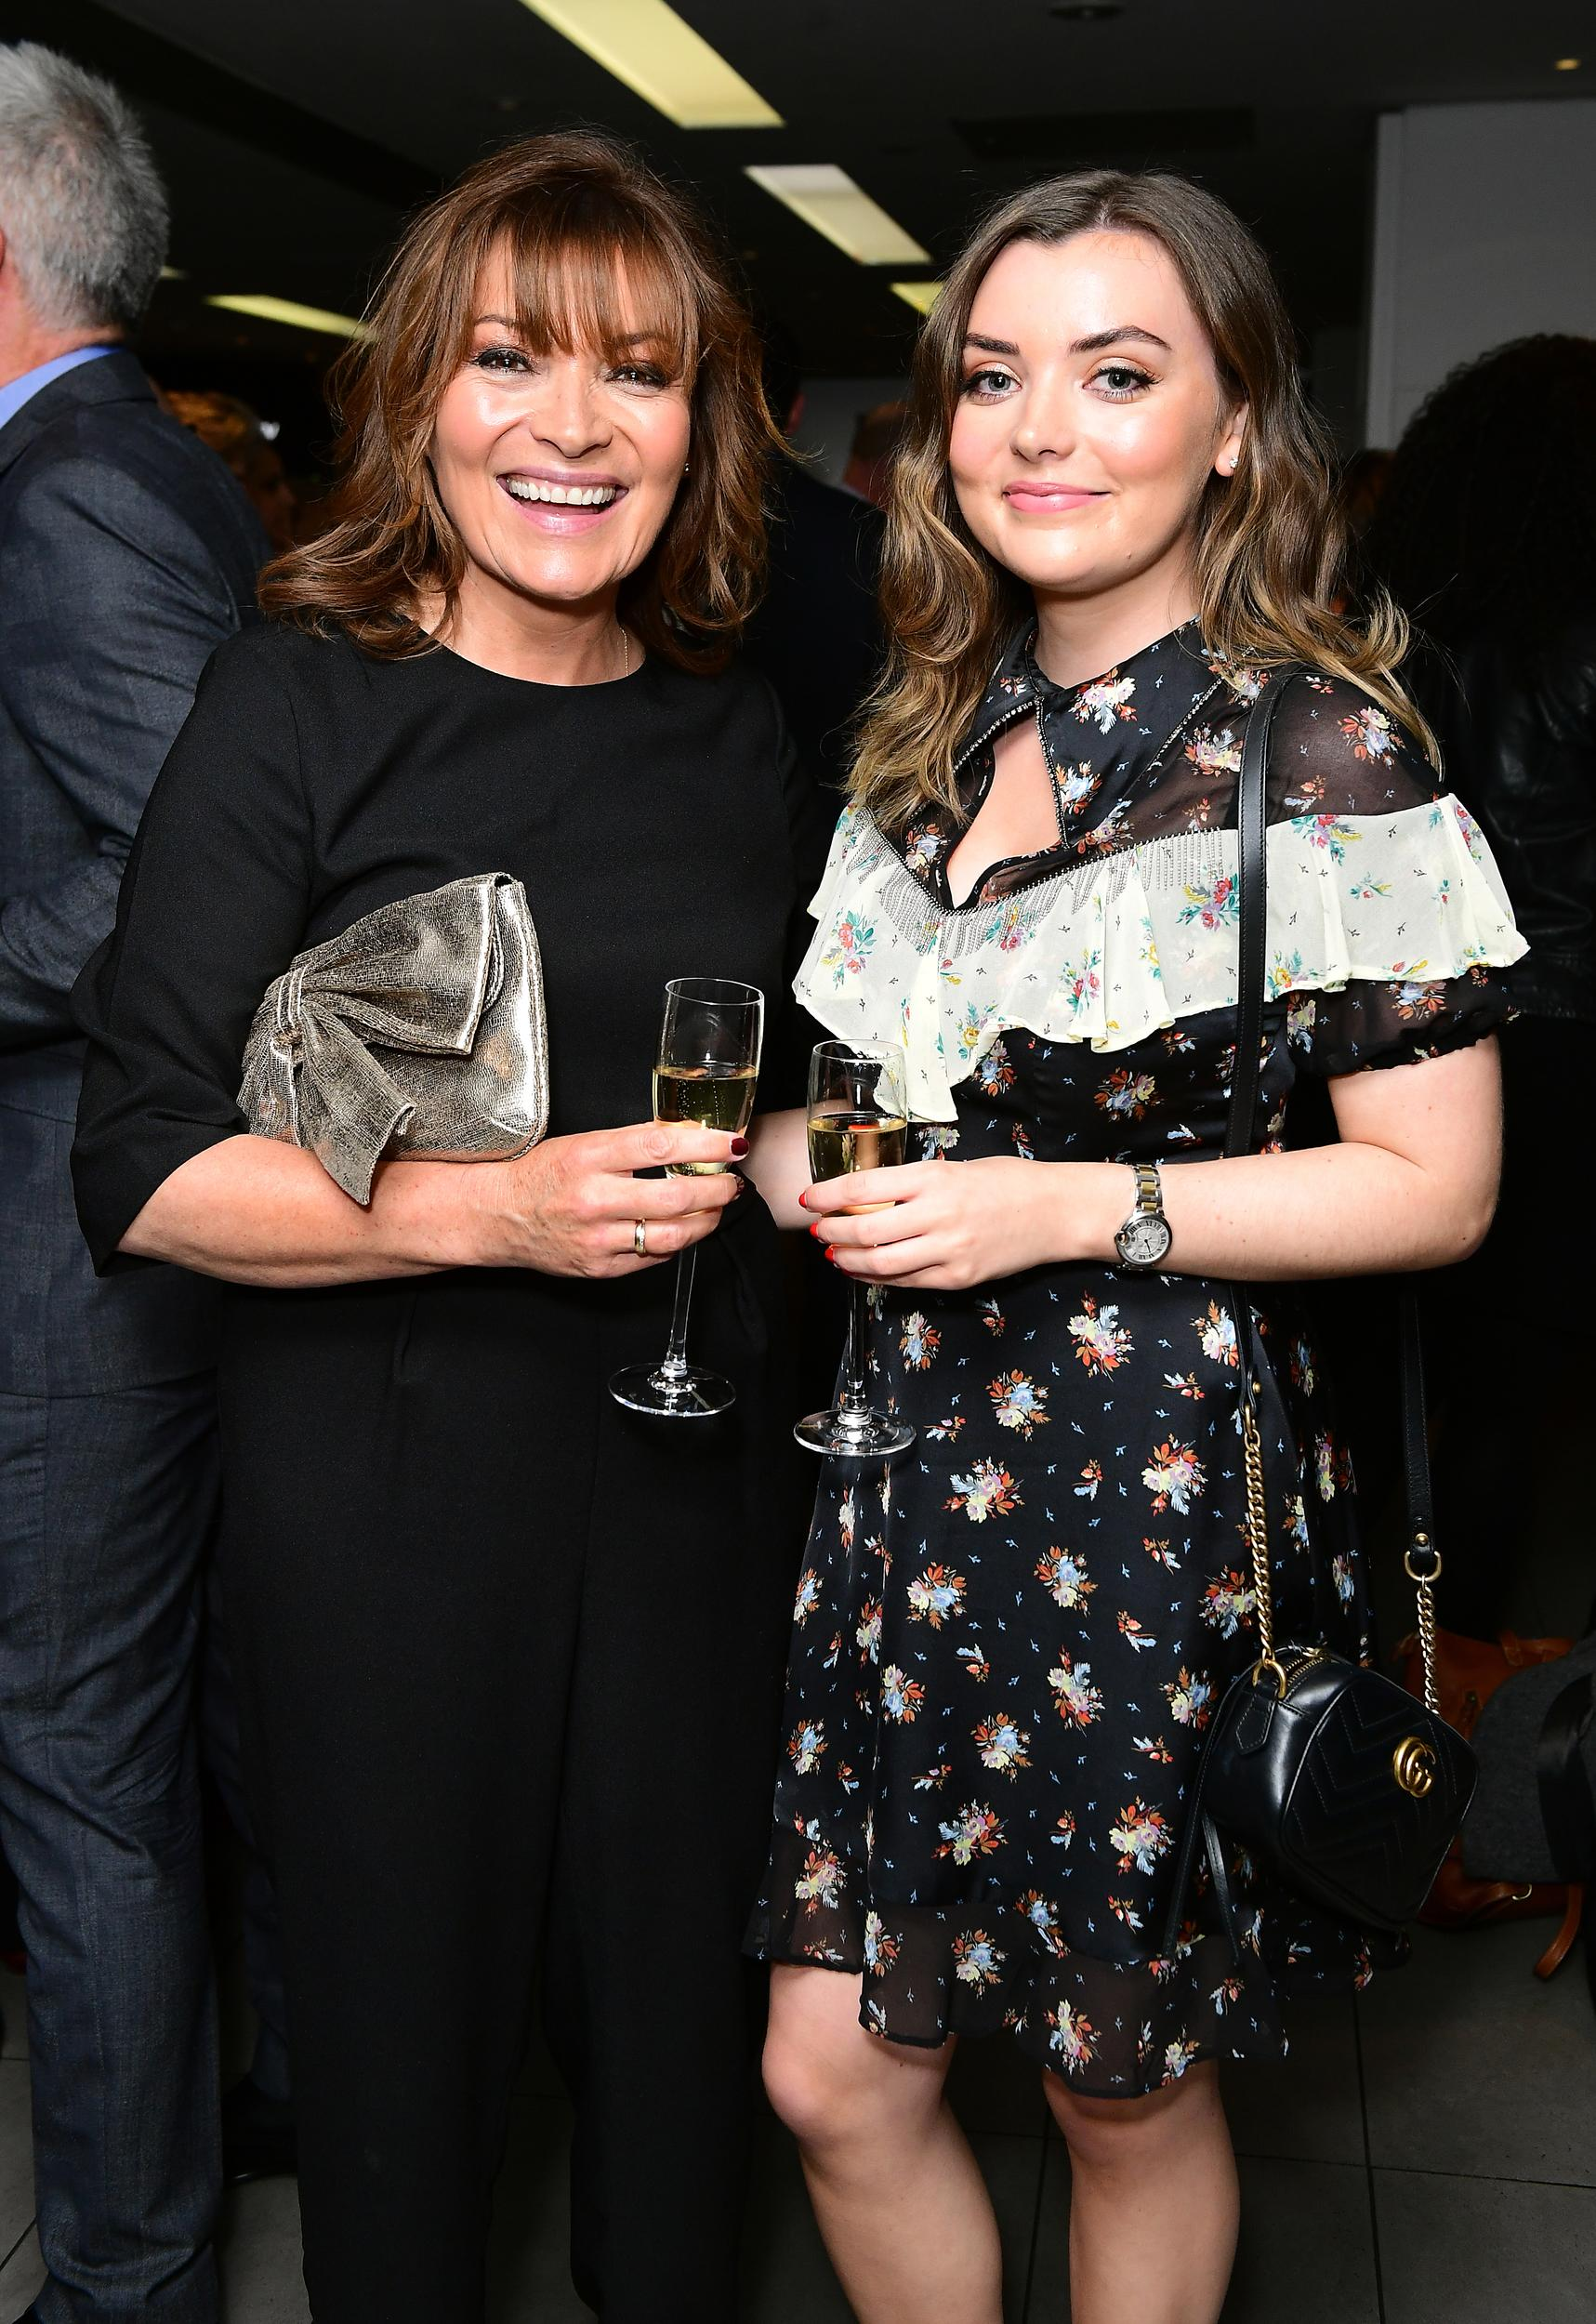 Lorraine Kelly (left) and Rosie Smith attending An Evening with Chickenshed at the ITV Studios at Southbank in London. Picture date: Tuesday April 17, 2018. Photo credit should read: Ian West/PA Wire